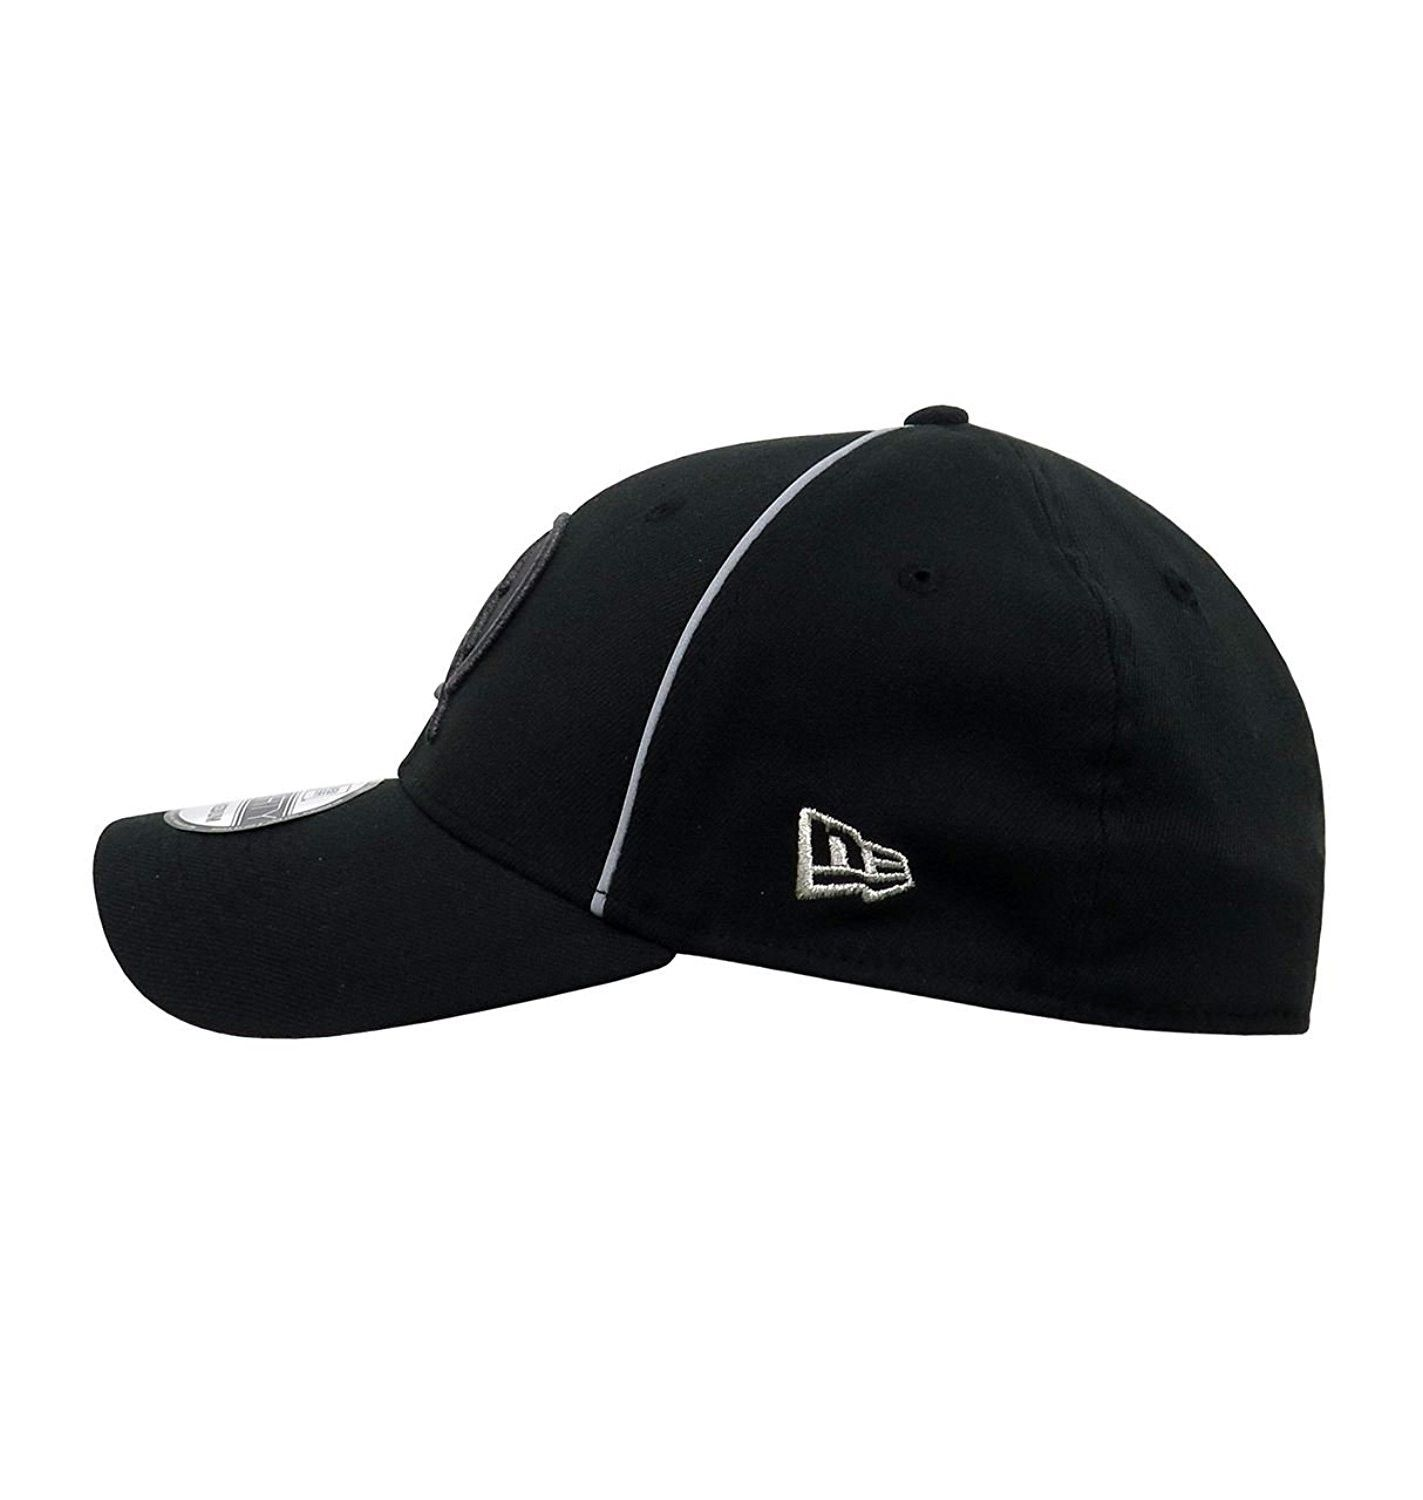 Flash Zoom Reflective Armor 39Thirty Fitted Hat - CQ12O7FF51G ... 08d8ebdd1e6